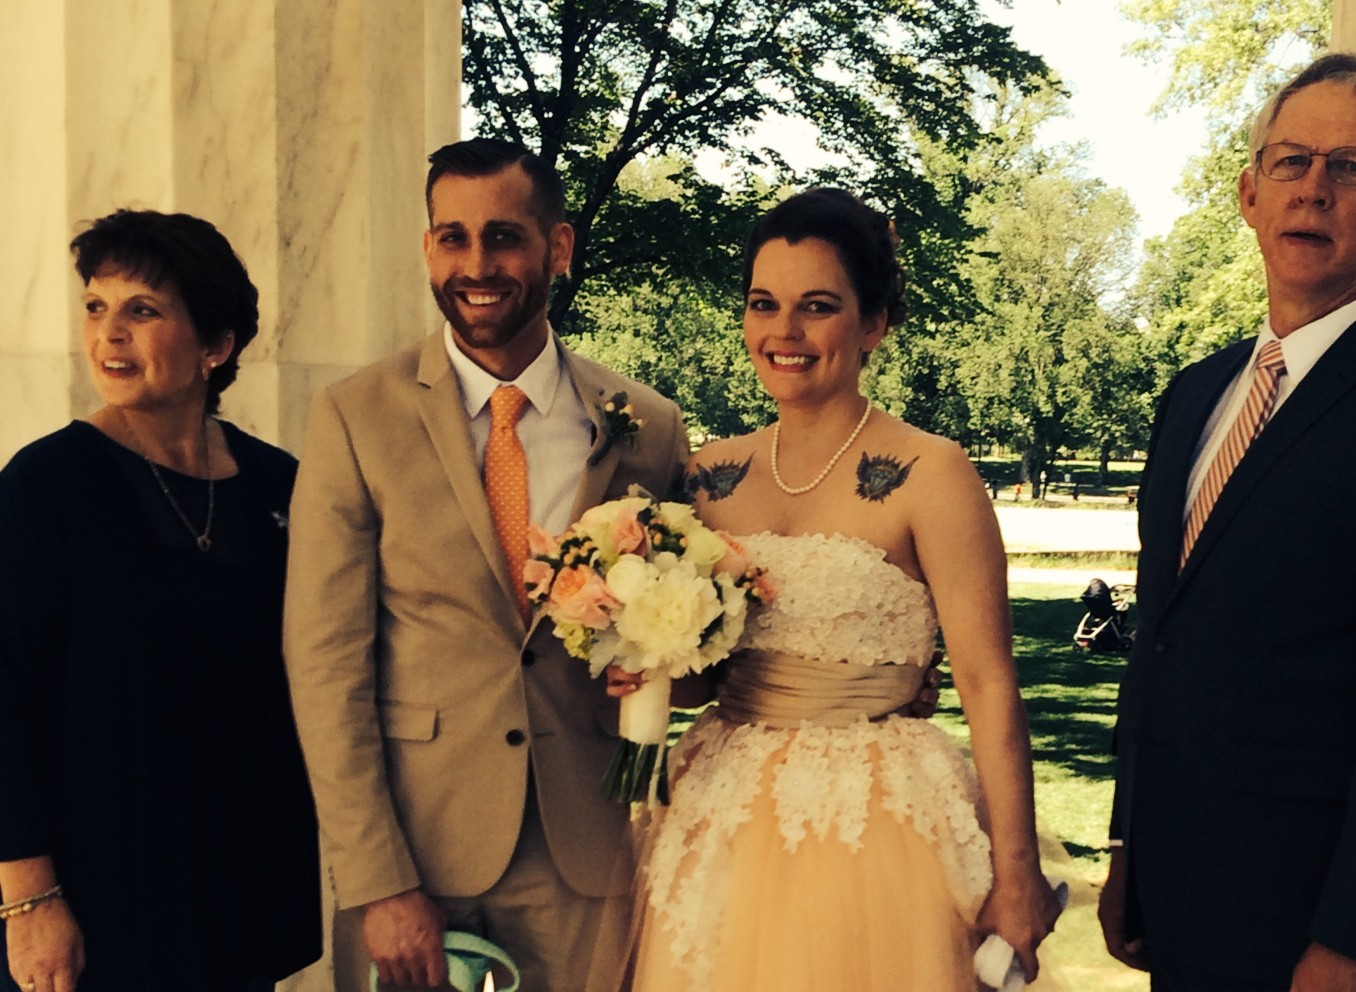 Local couple finds time to marry during busy holiday weekend